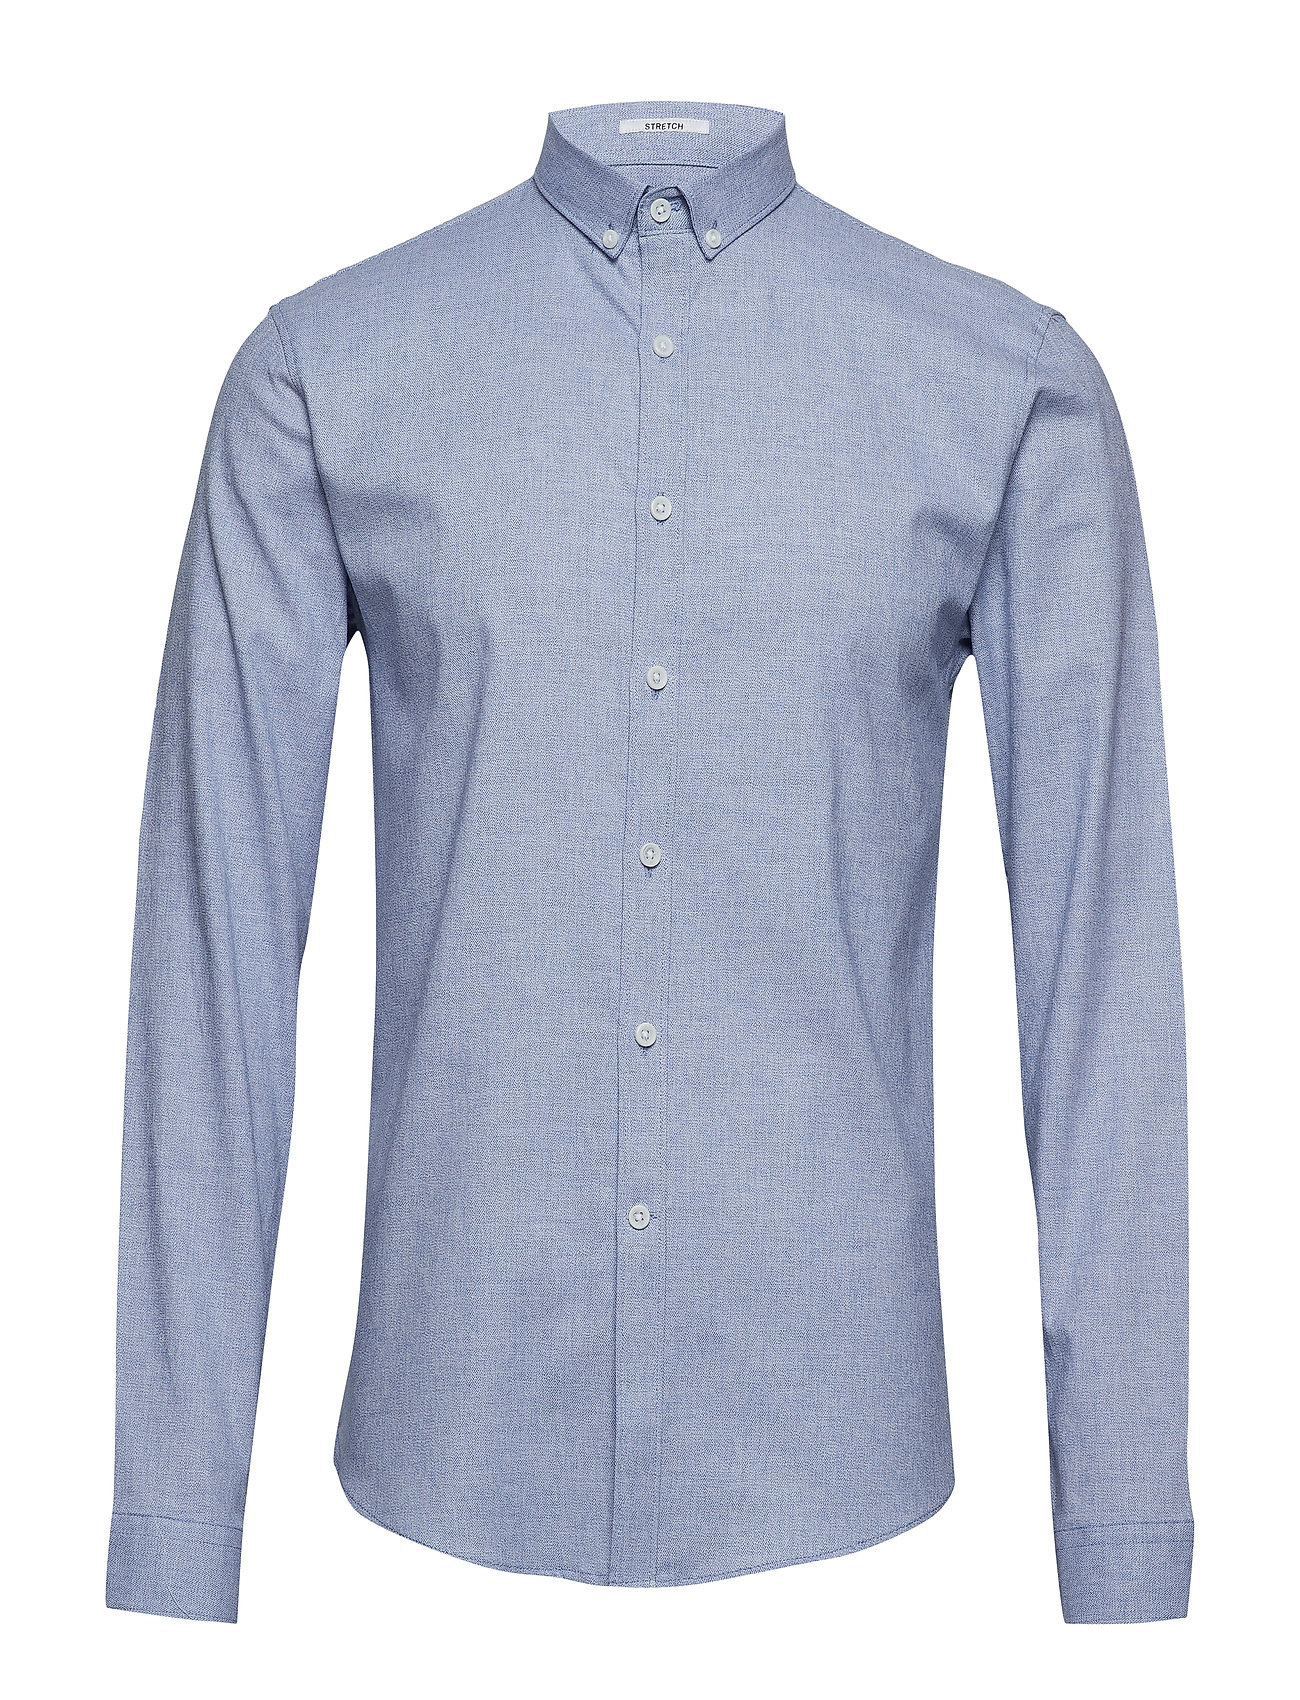 Lindbergh Mouliné stretch shirt L/S - LT BLUE